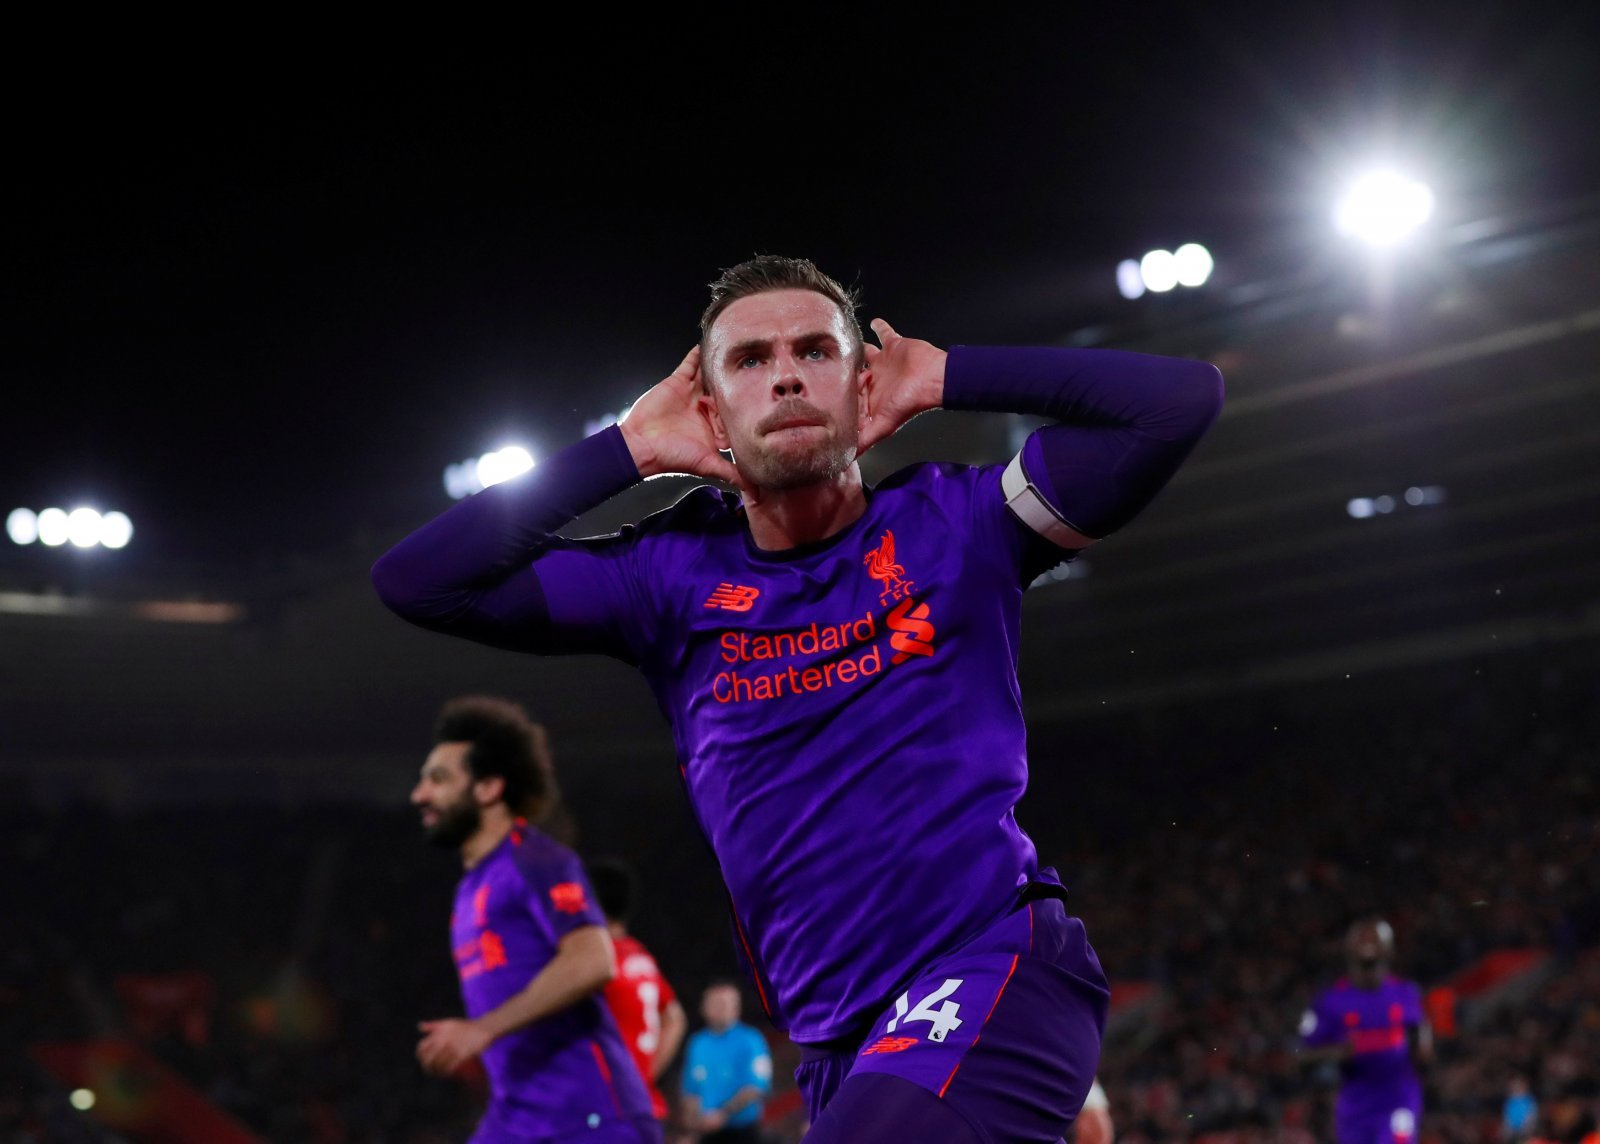 Liverpool: Jordan Henderson deserves more appreciation